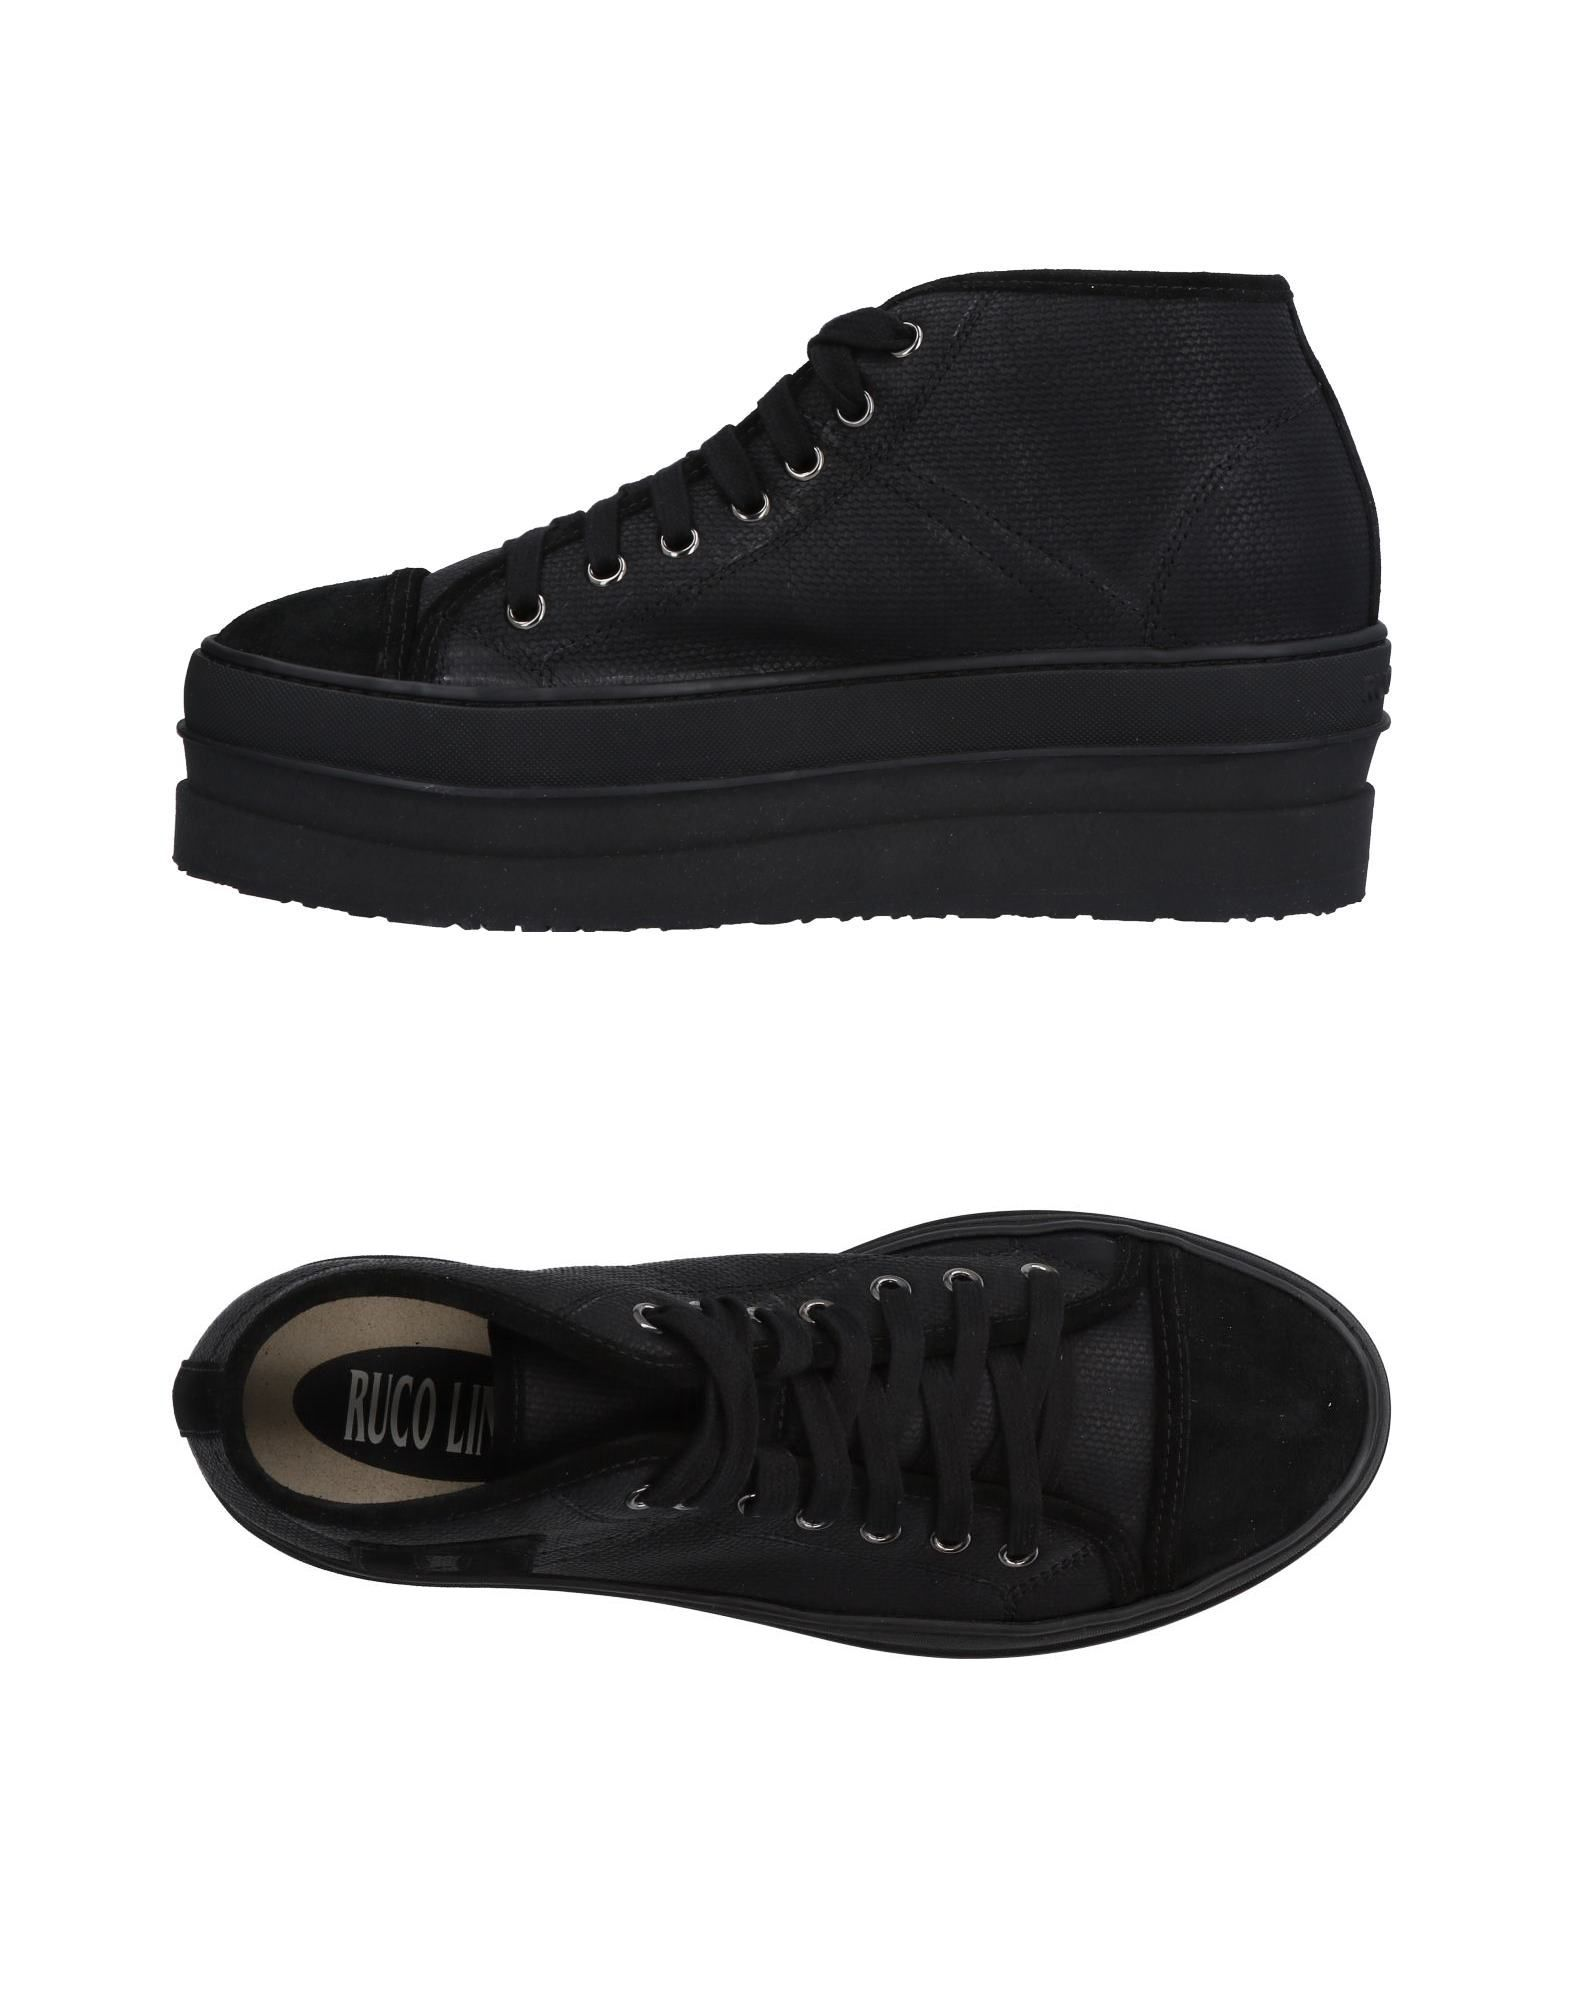 Ruco Line Sneakers - Women Ruco Ruco Ruco Line Sneakers online on  Canada - 11472913CD 29001d